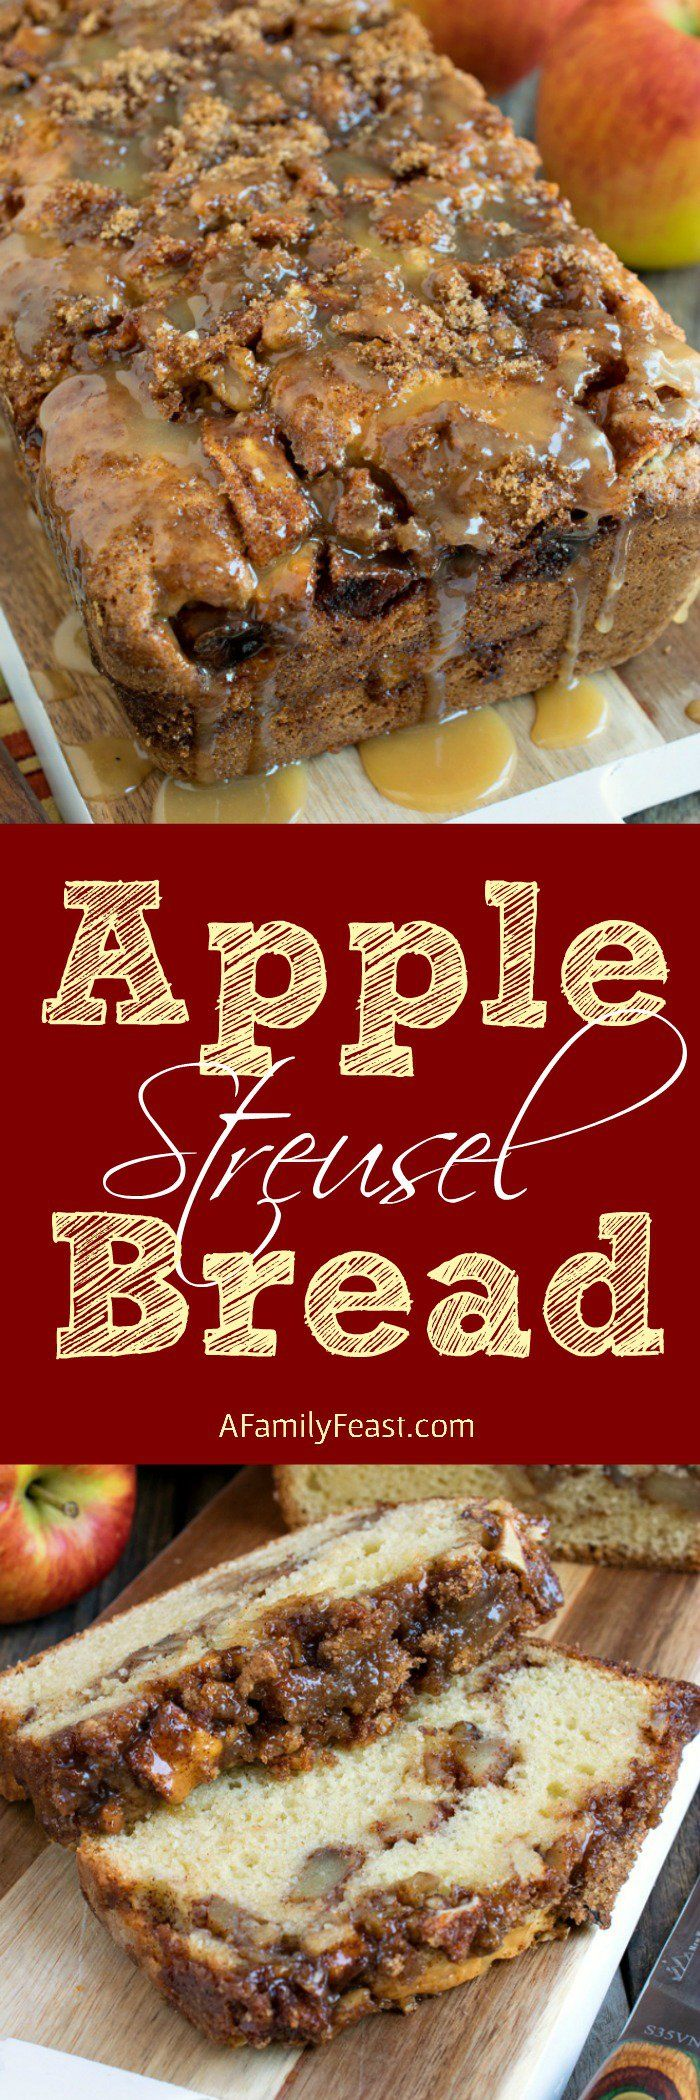 Apple Streusel Bread - A sweet cake-like bread with a layer of apple chunks and walnuts in middle and topped with a cinnamon streusel. The best dessert for apple season!